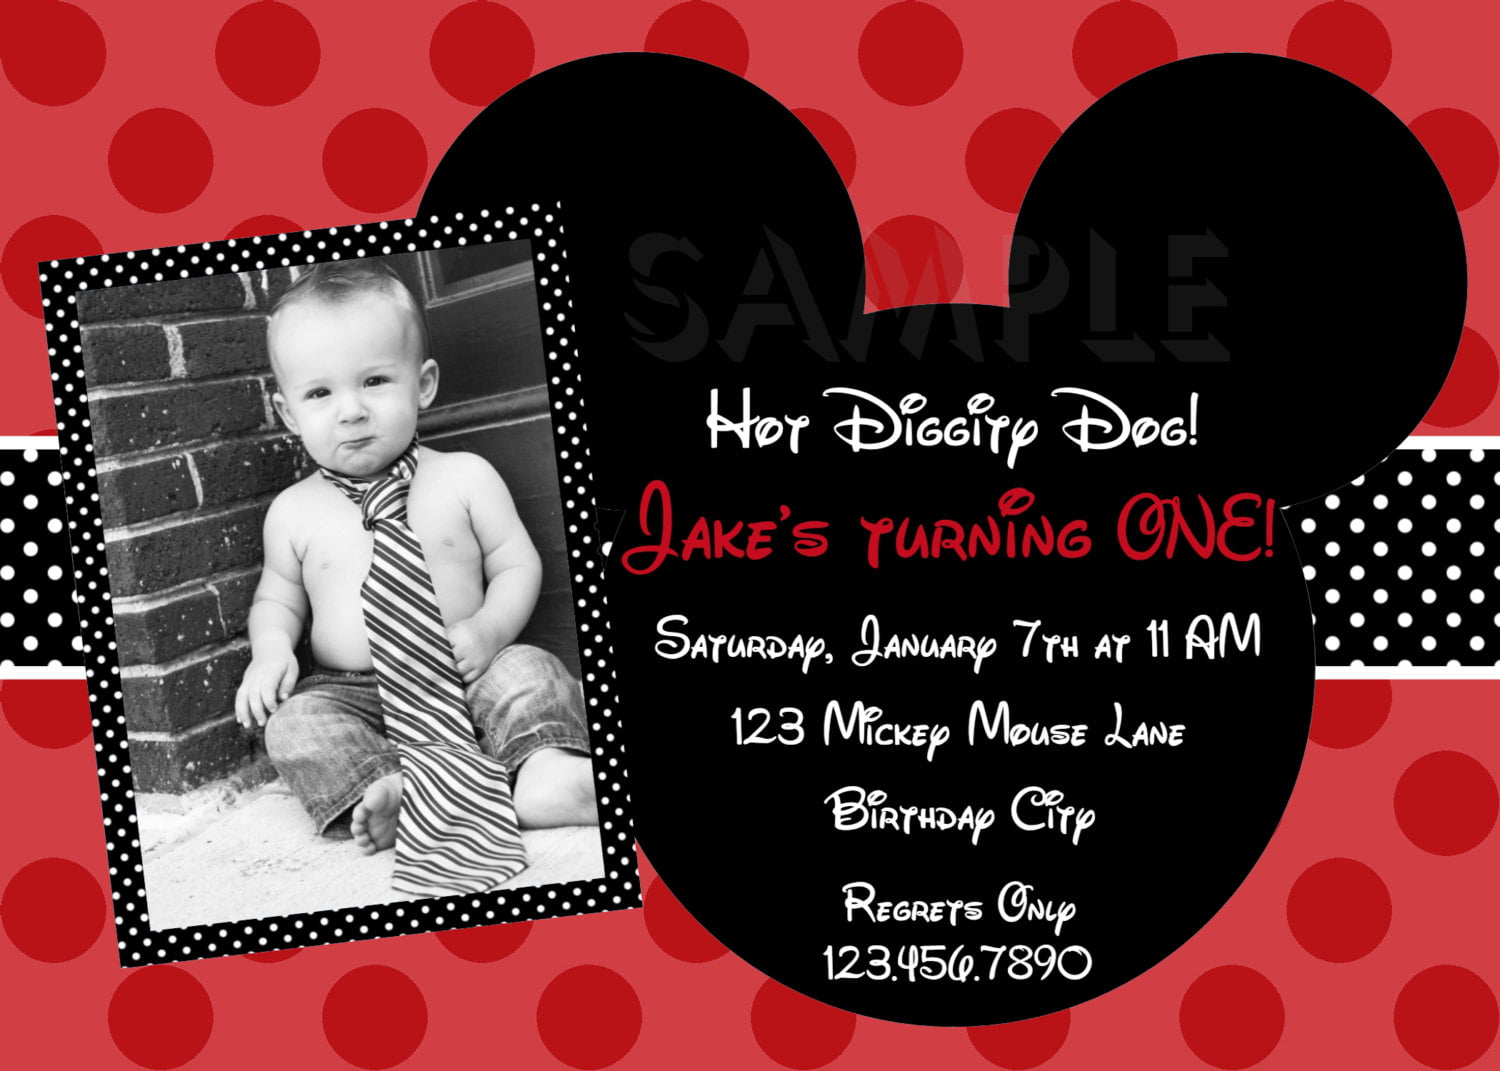 Black and White Photograph mickey-mouse-birthday-invitations-cool-mickey-mouse-birthday